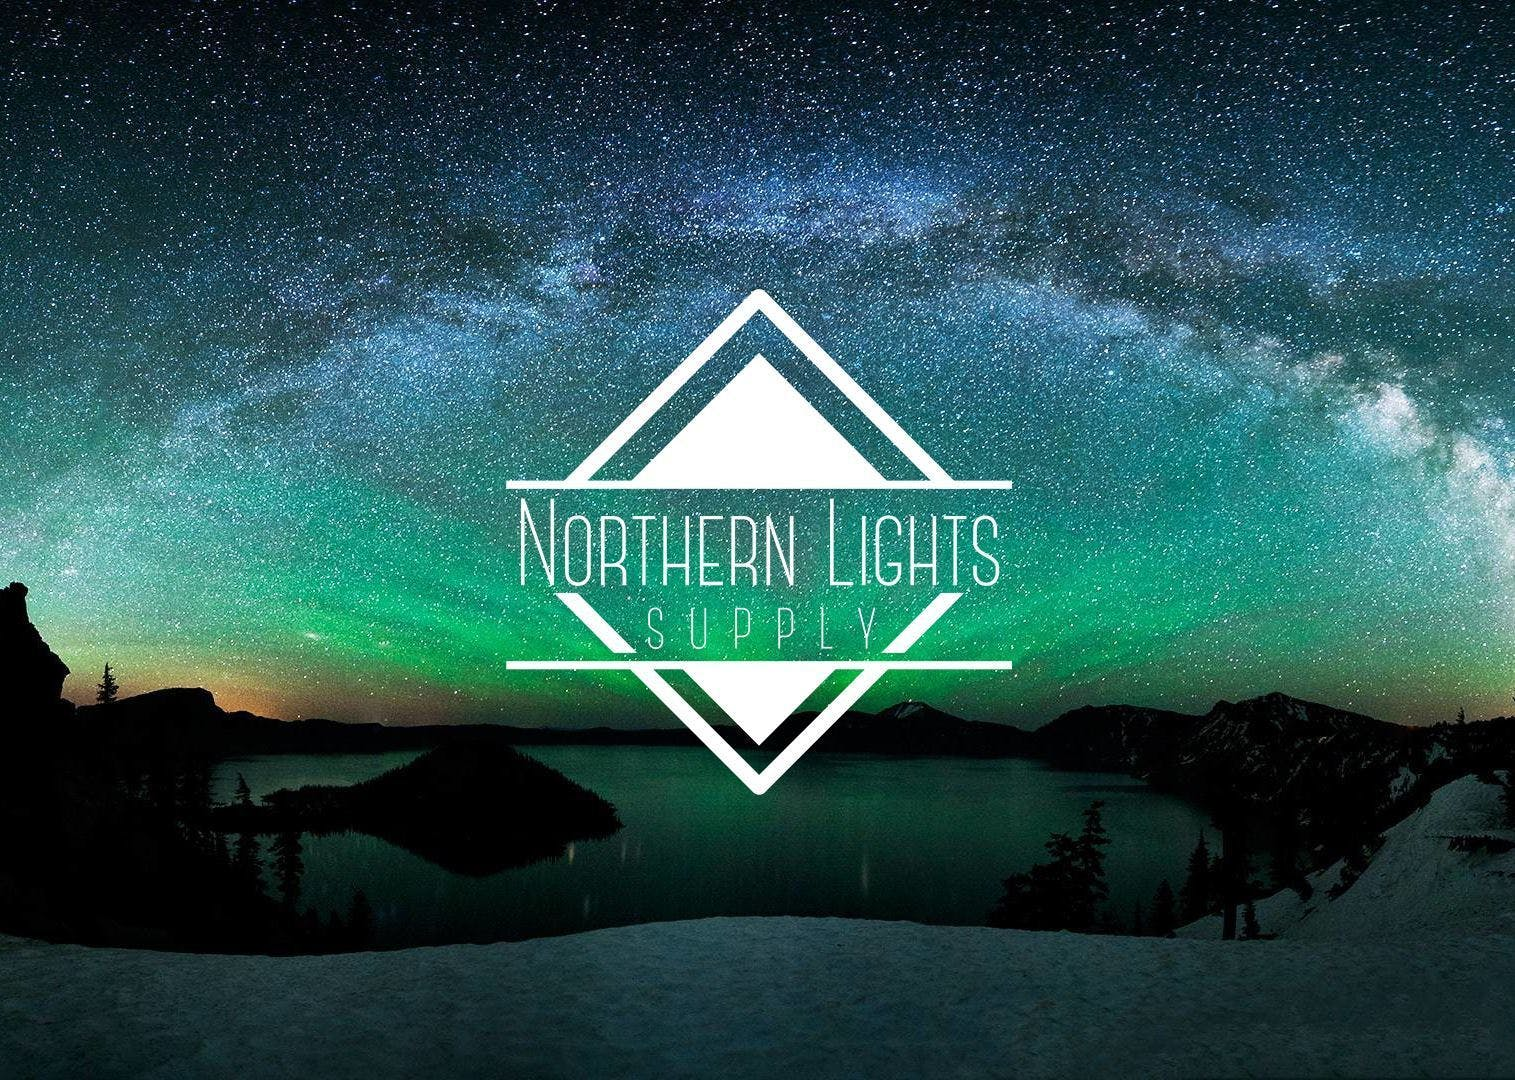 Northern Lights Supply